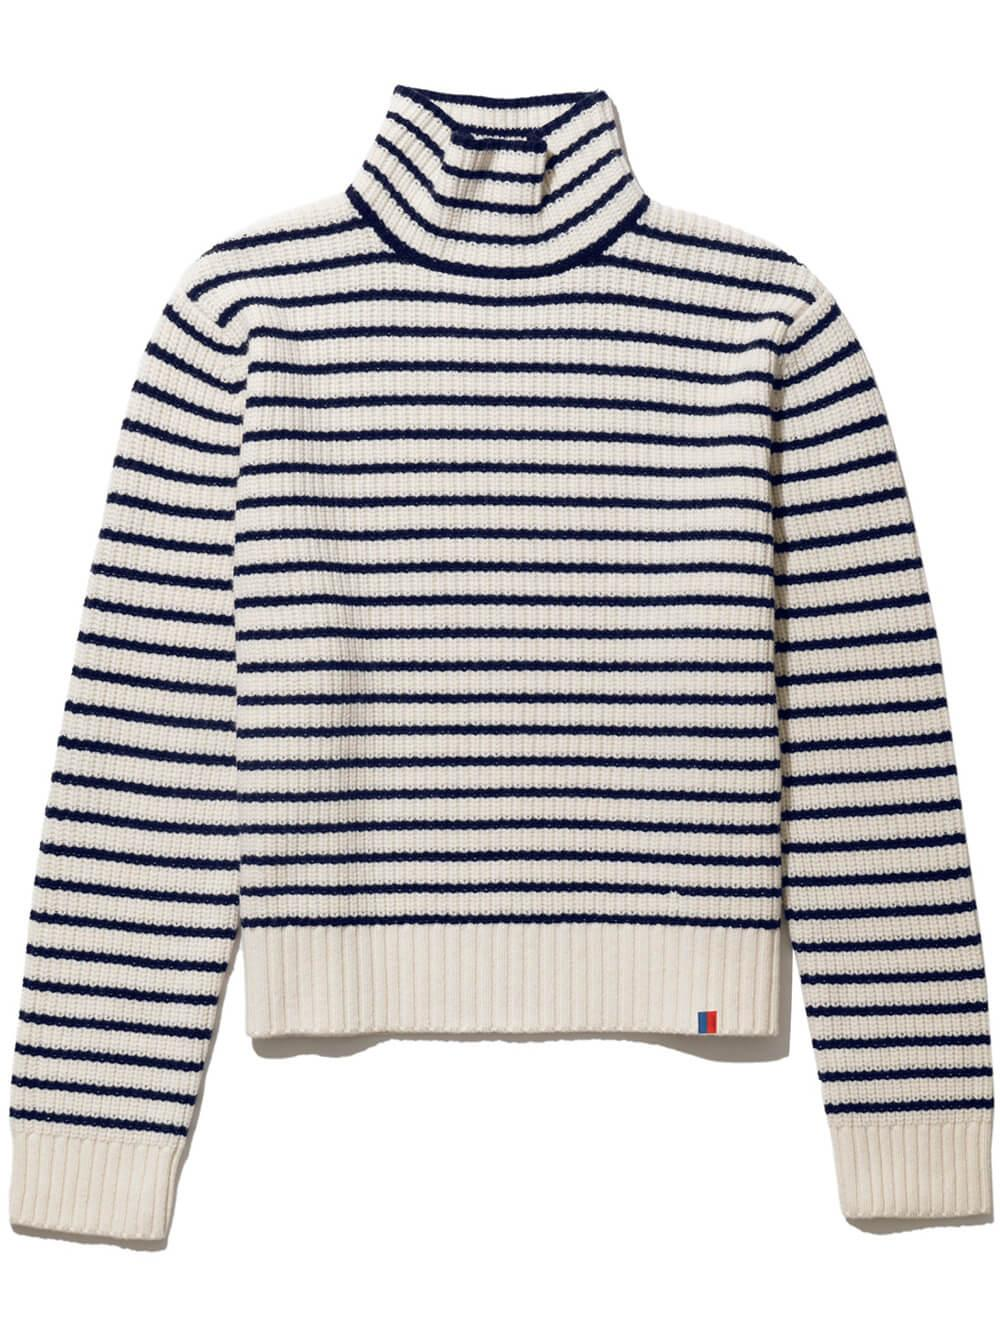 The Banks Striped Sweater Item # SW180F3